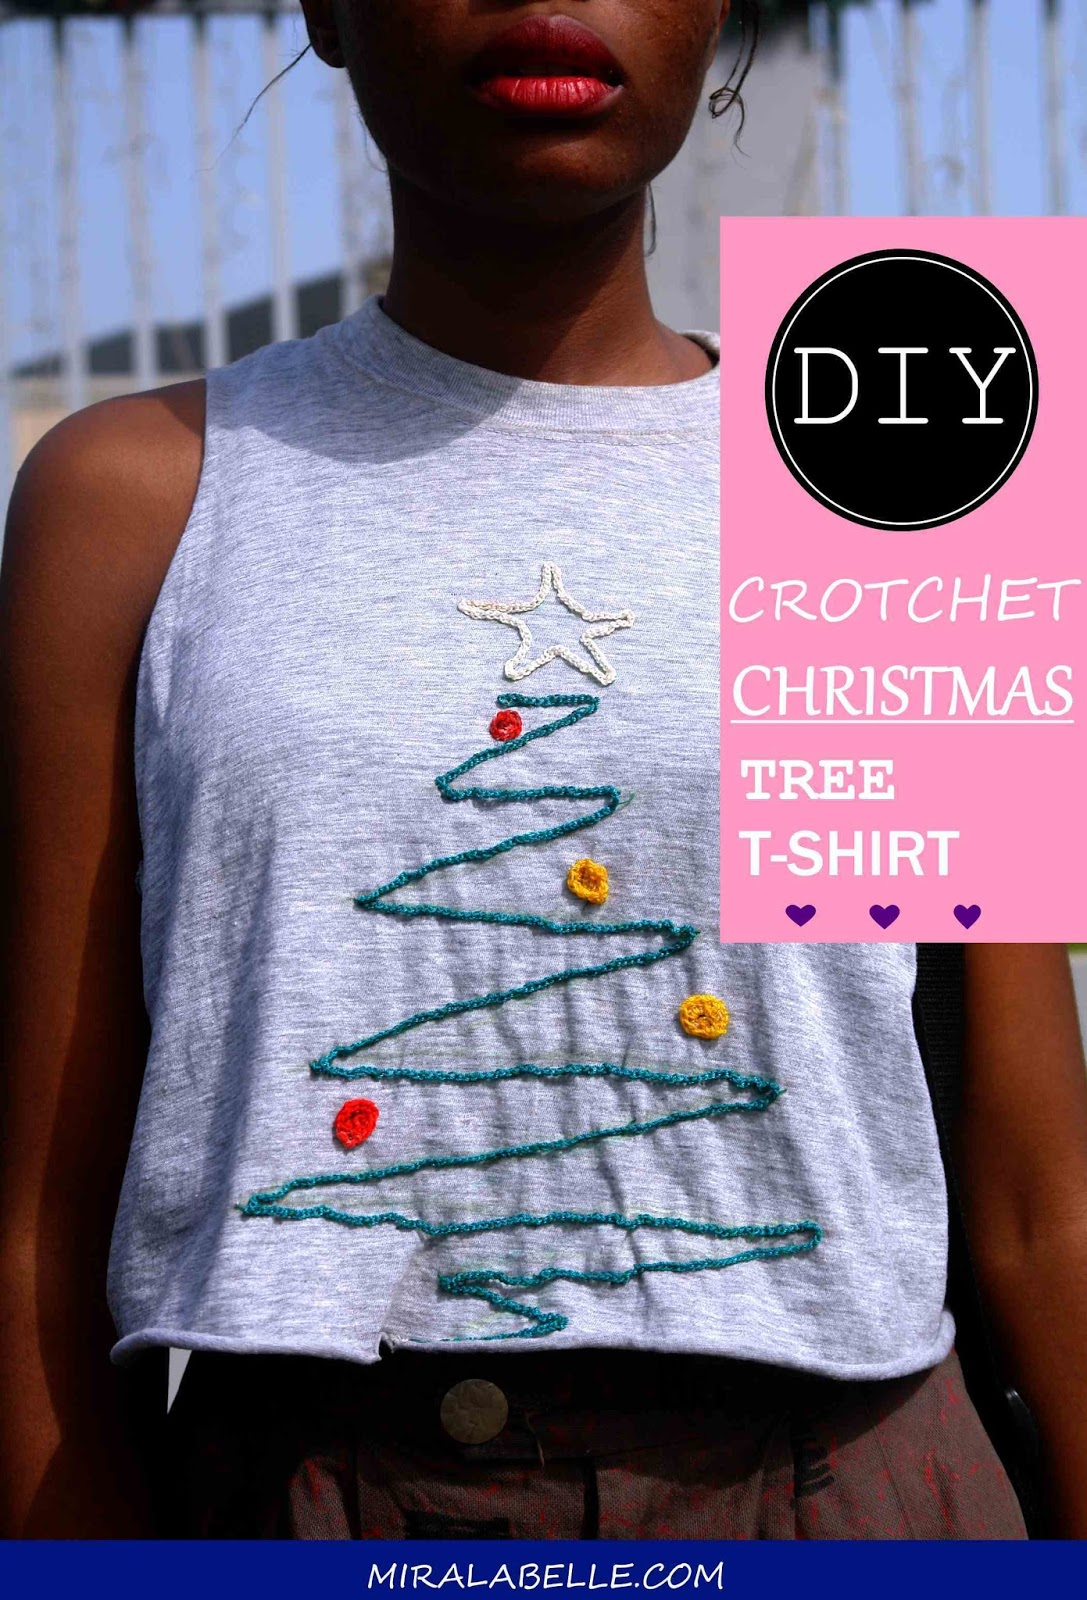 Christmas Tree Crotchet Fashion DIY